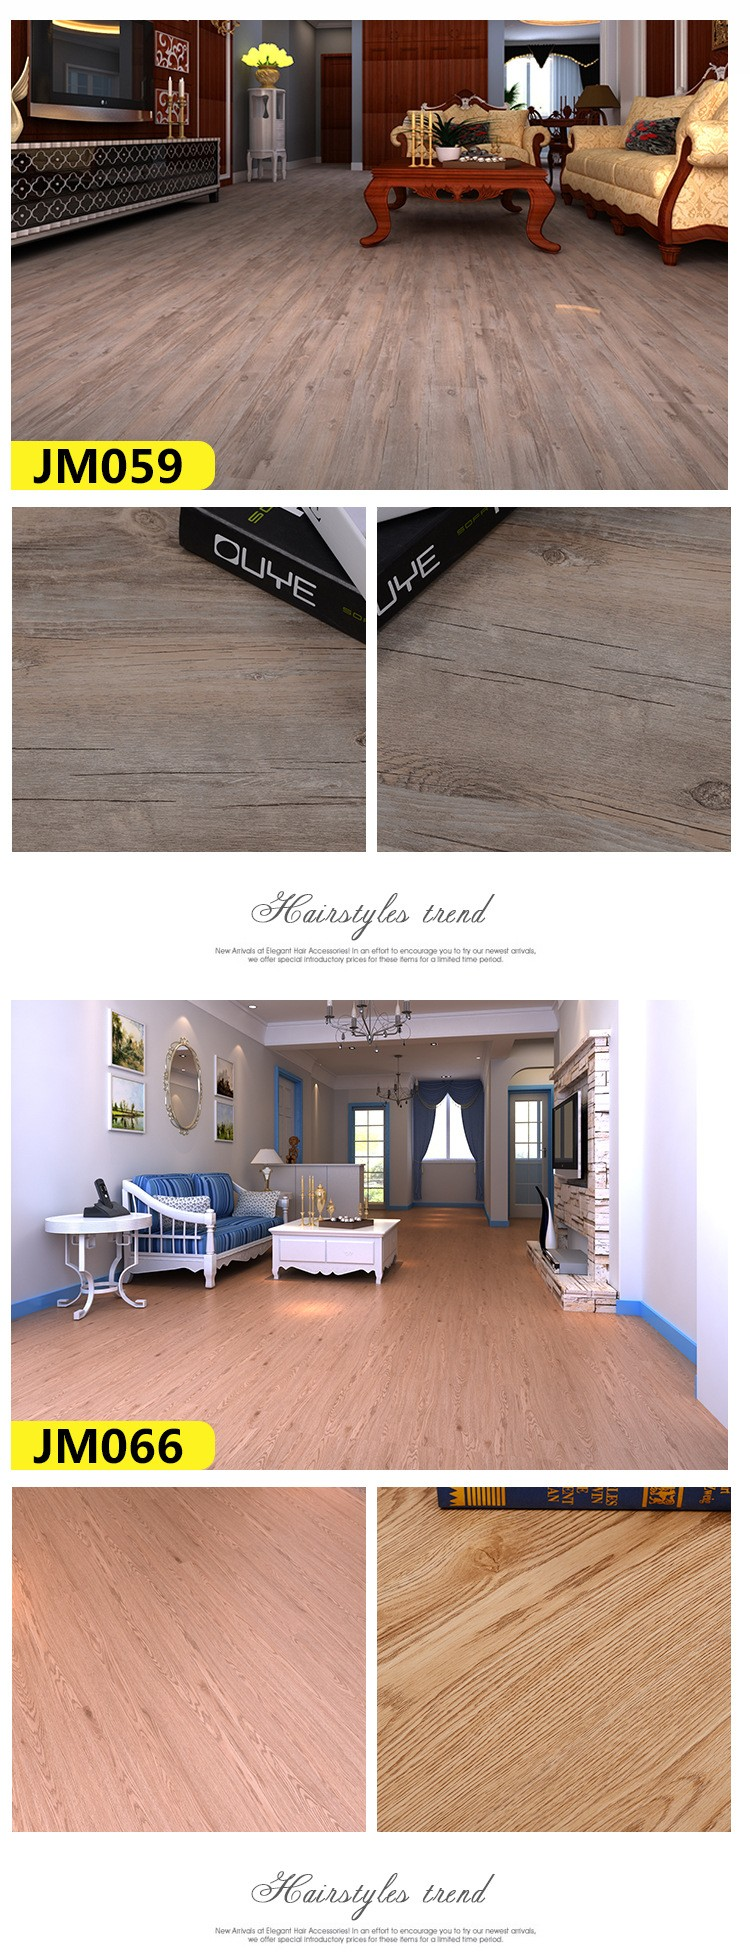 flooring in room wall vinyl flooring made in China